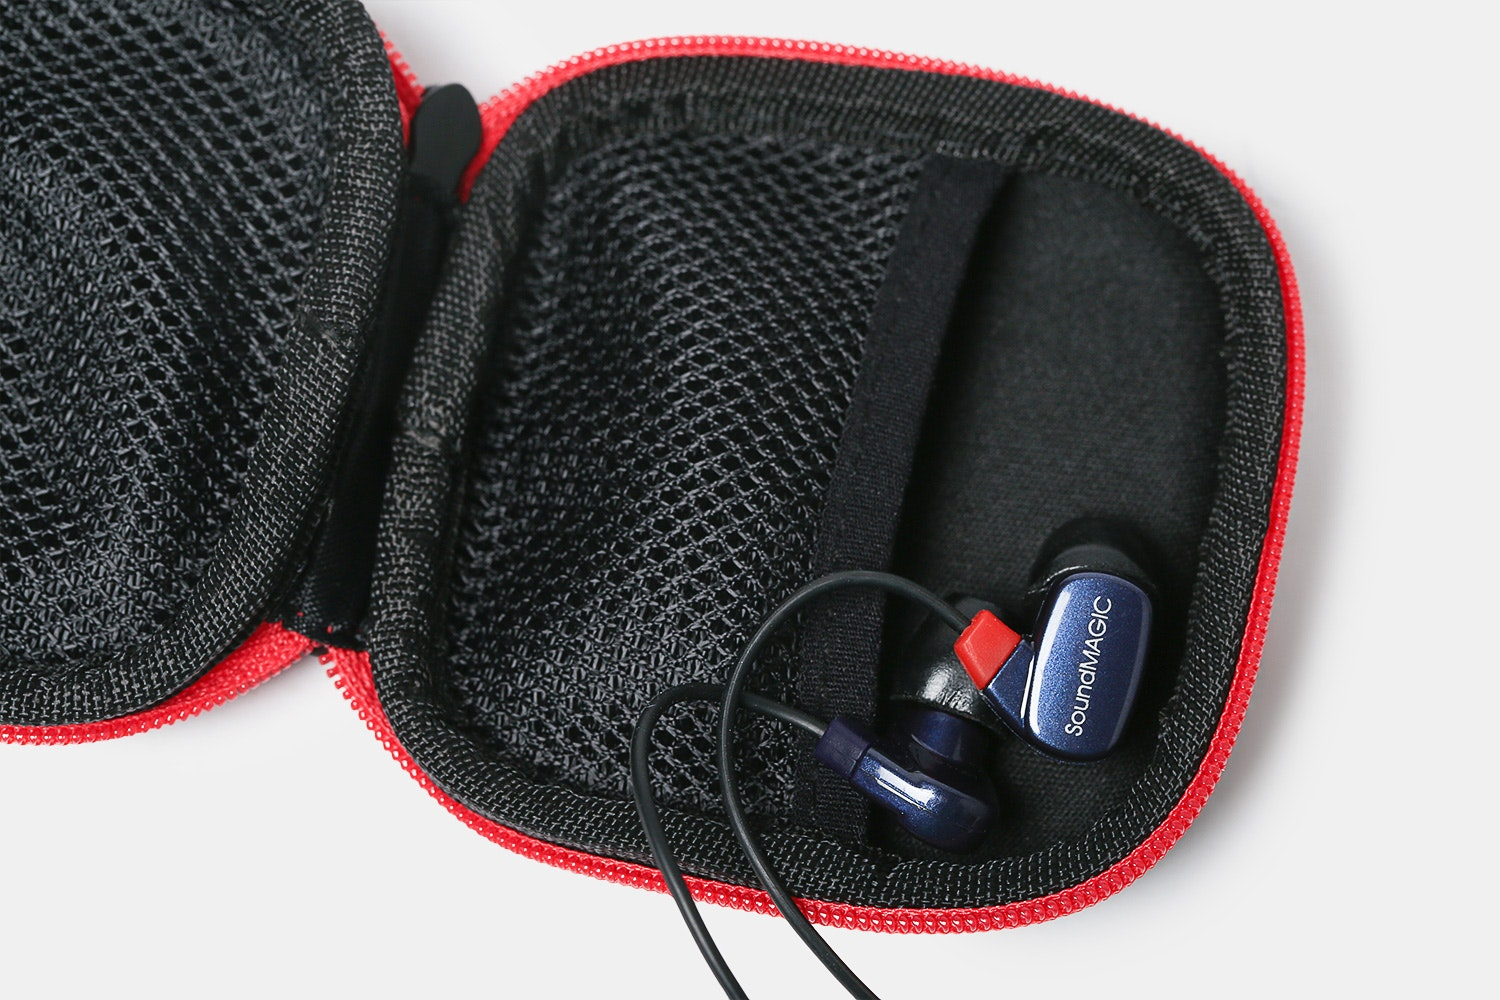 SoundMAGIC PL50 IEMs